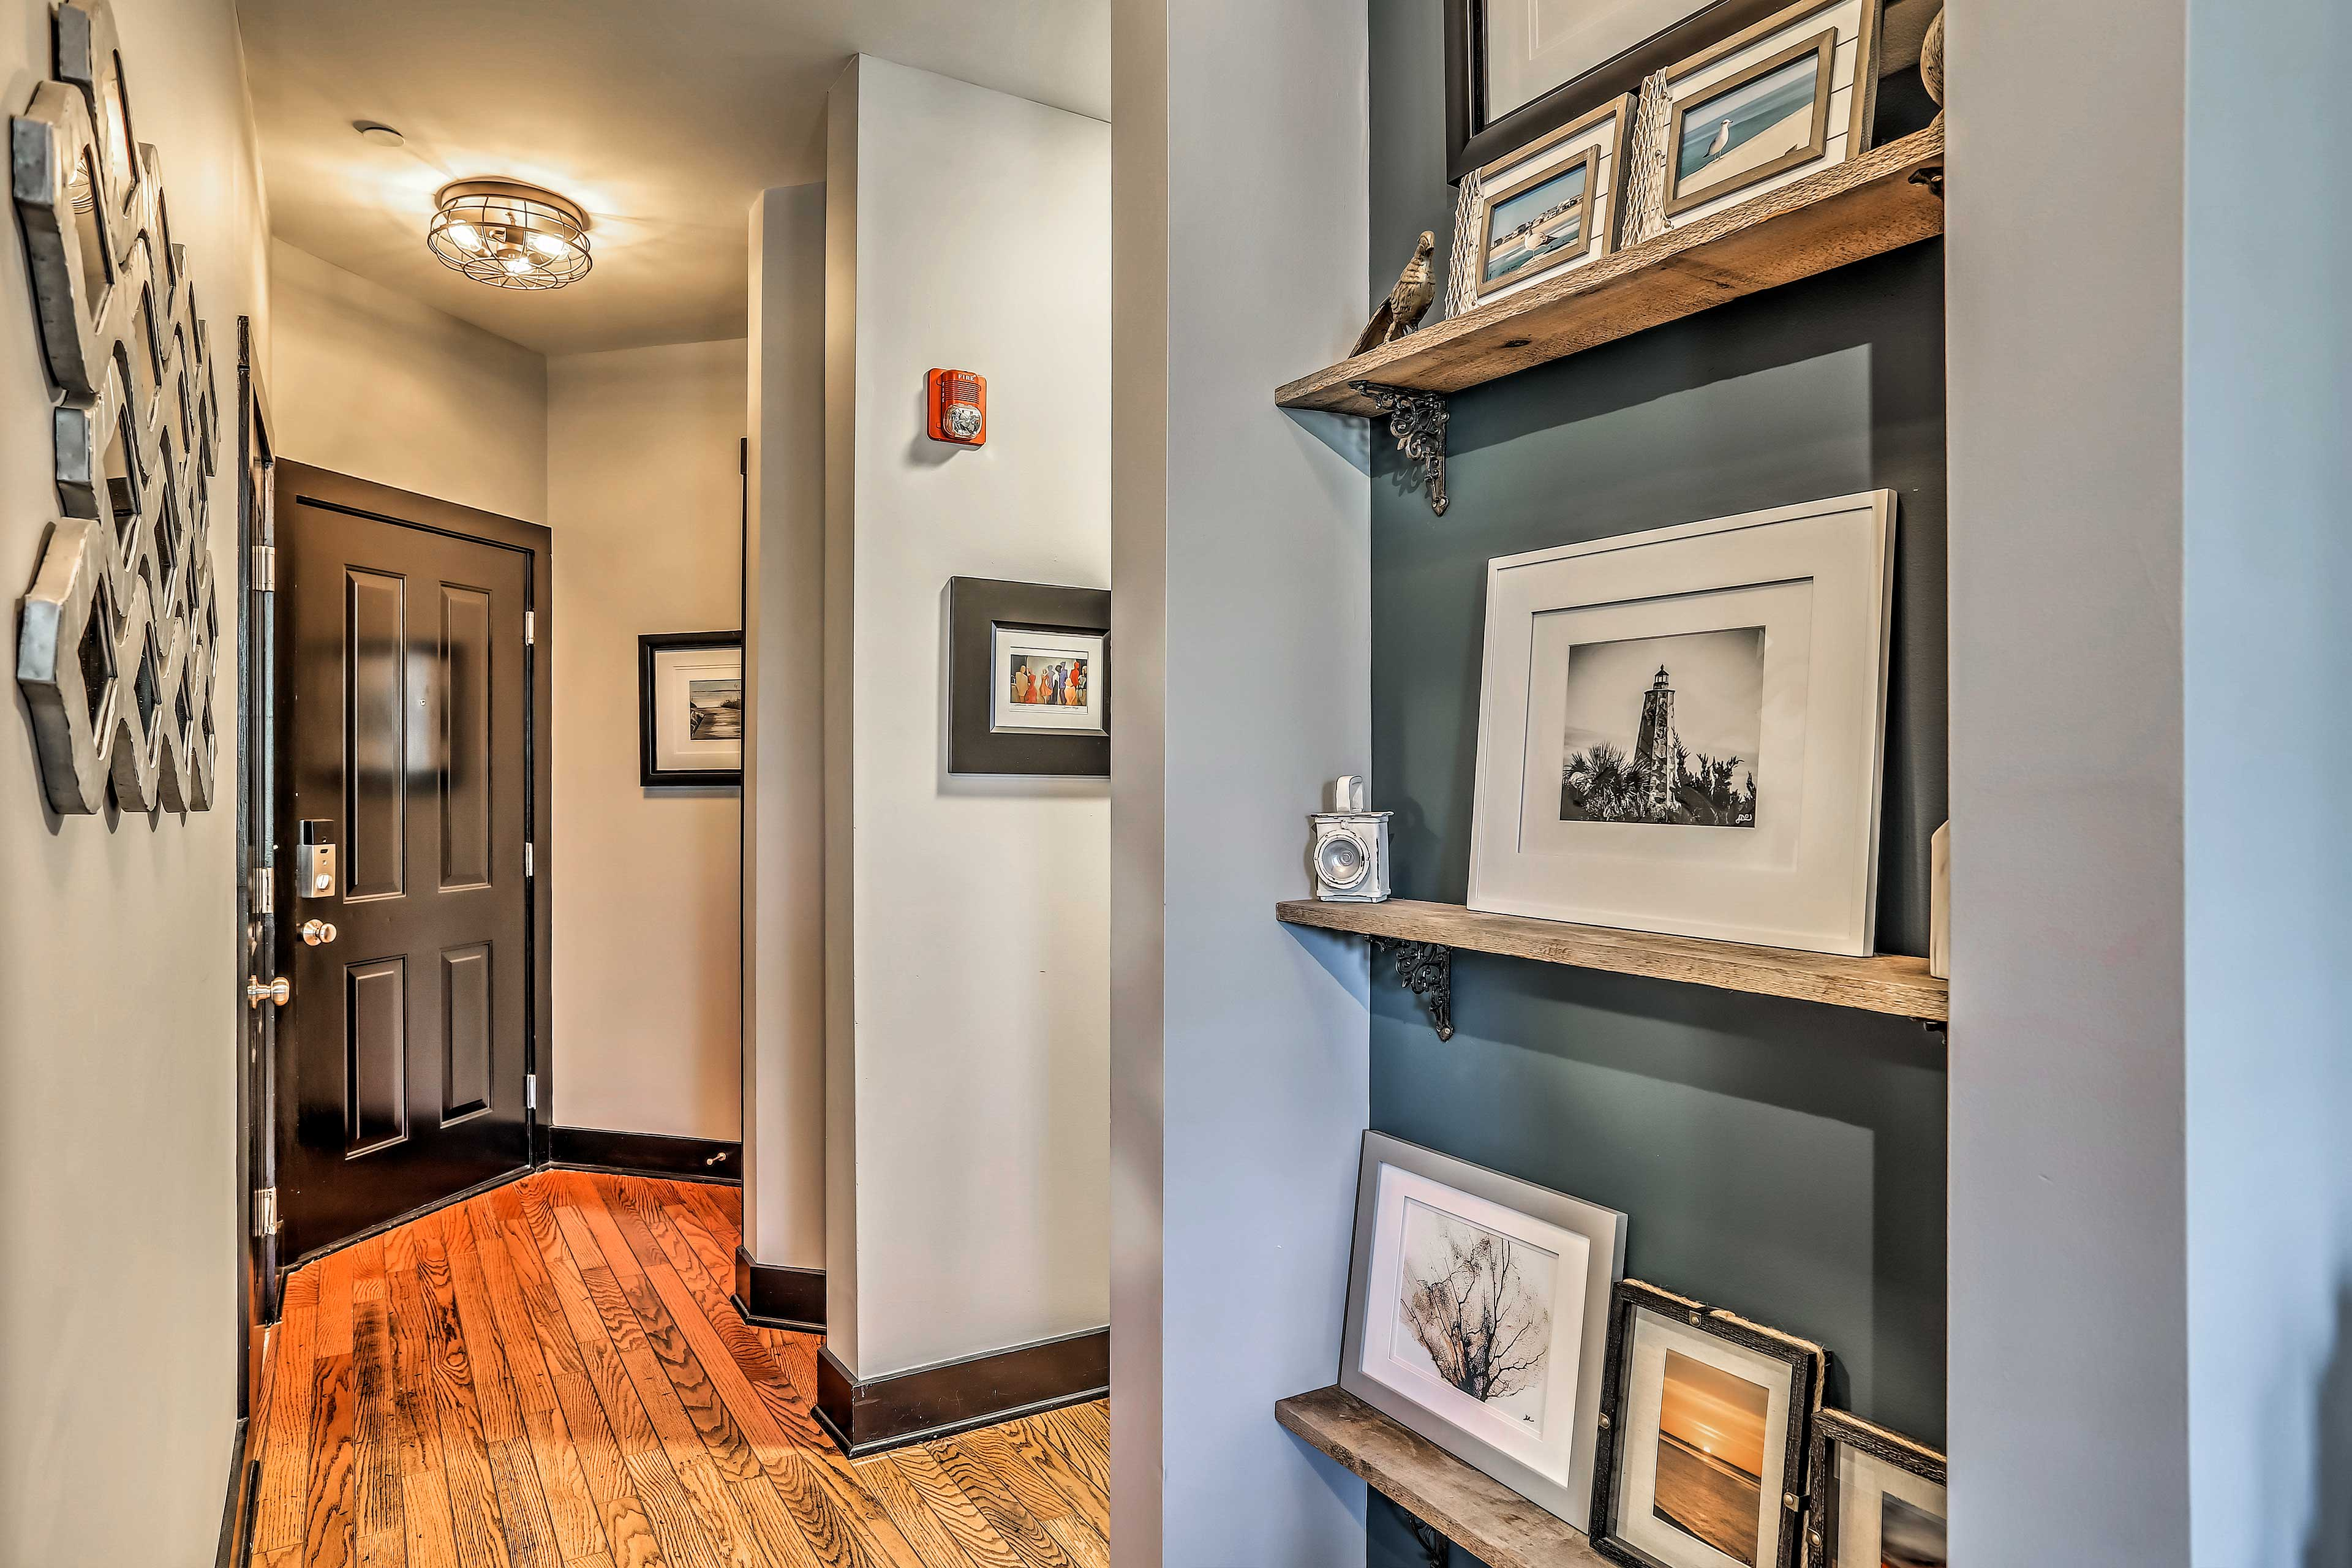 Let's explore the rest of the well-appointed condo!